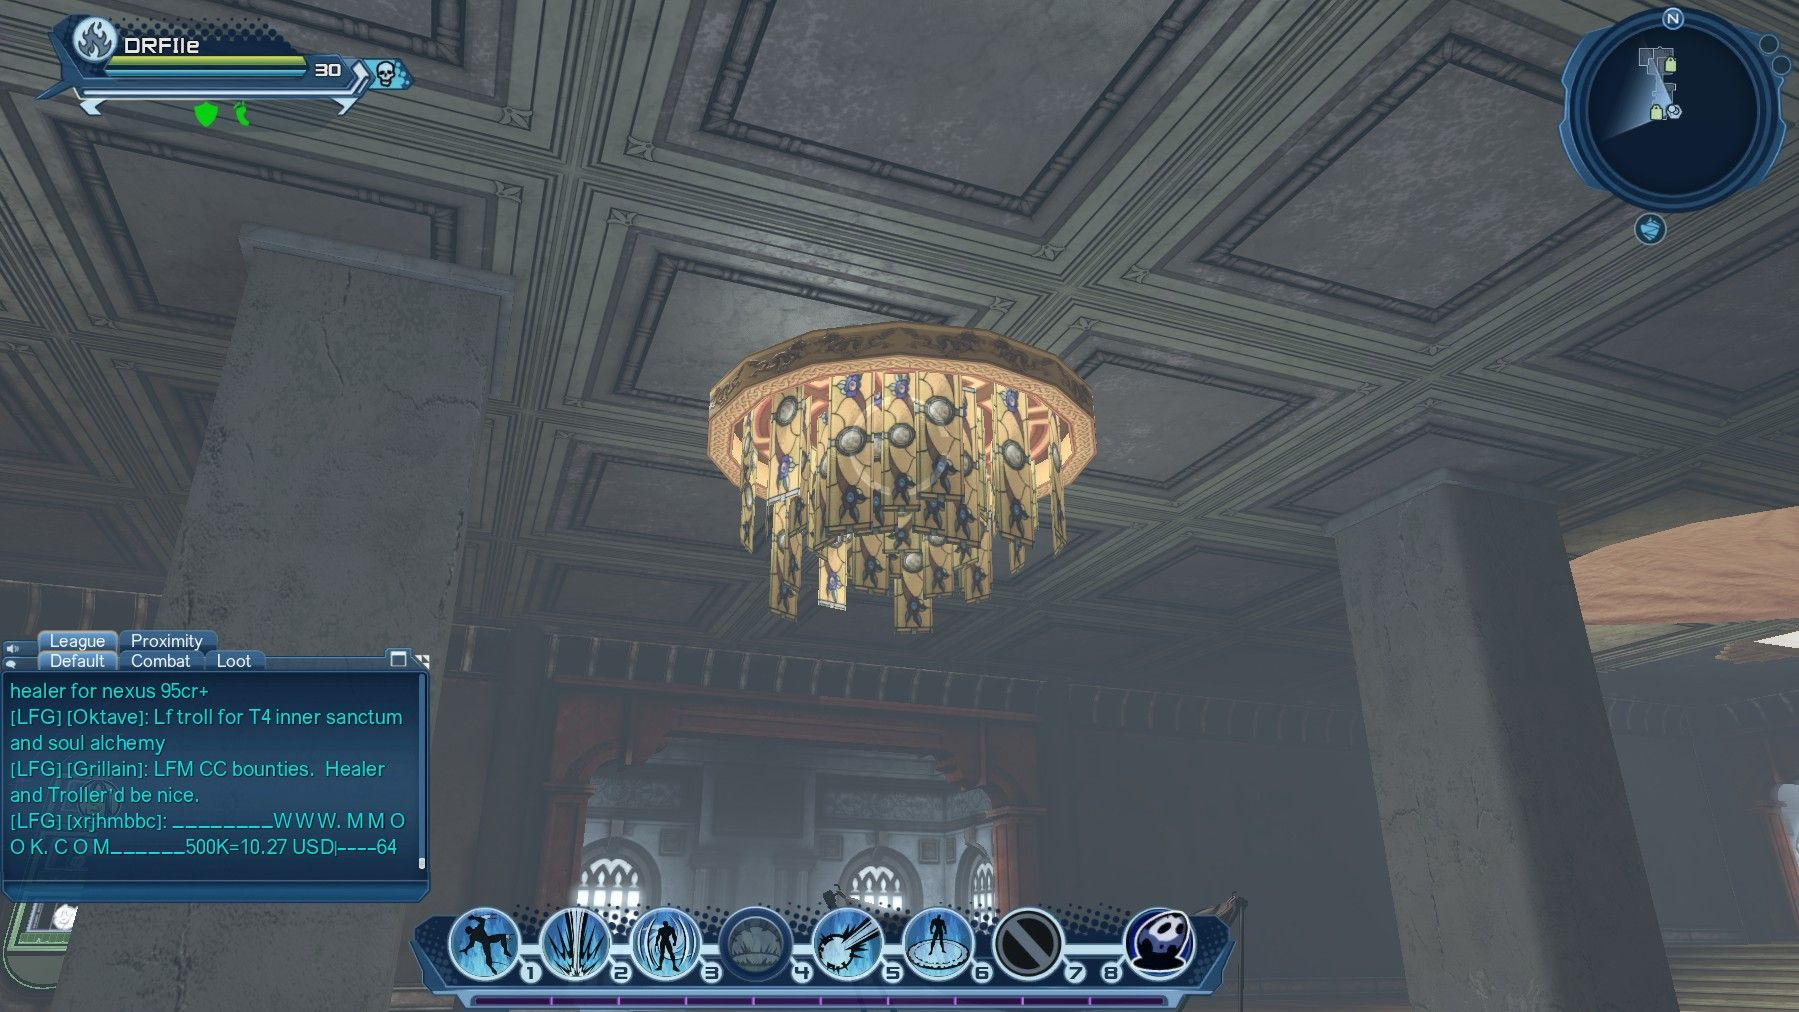 stained glass chandelier universe fansite dcuo furniture dcgame occult accent table location thumbnail middle size small half round console ikea office storage countertop and